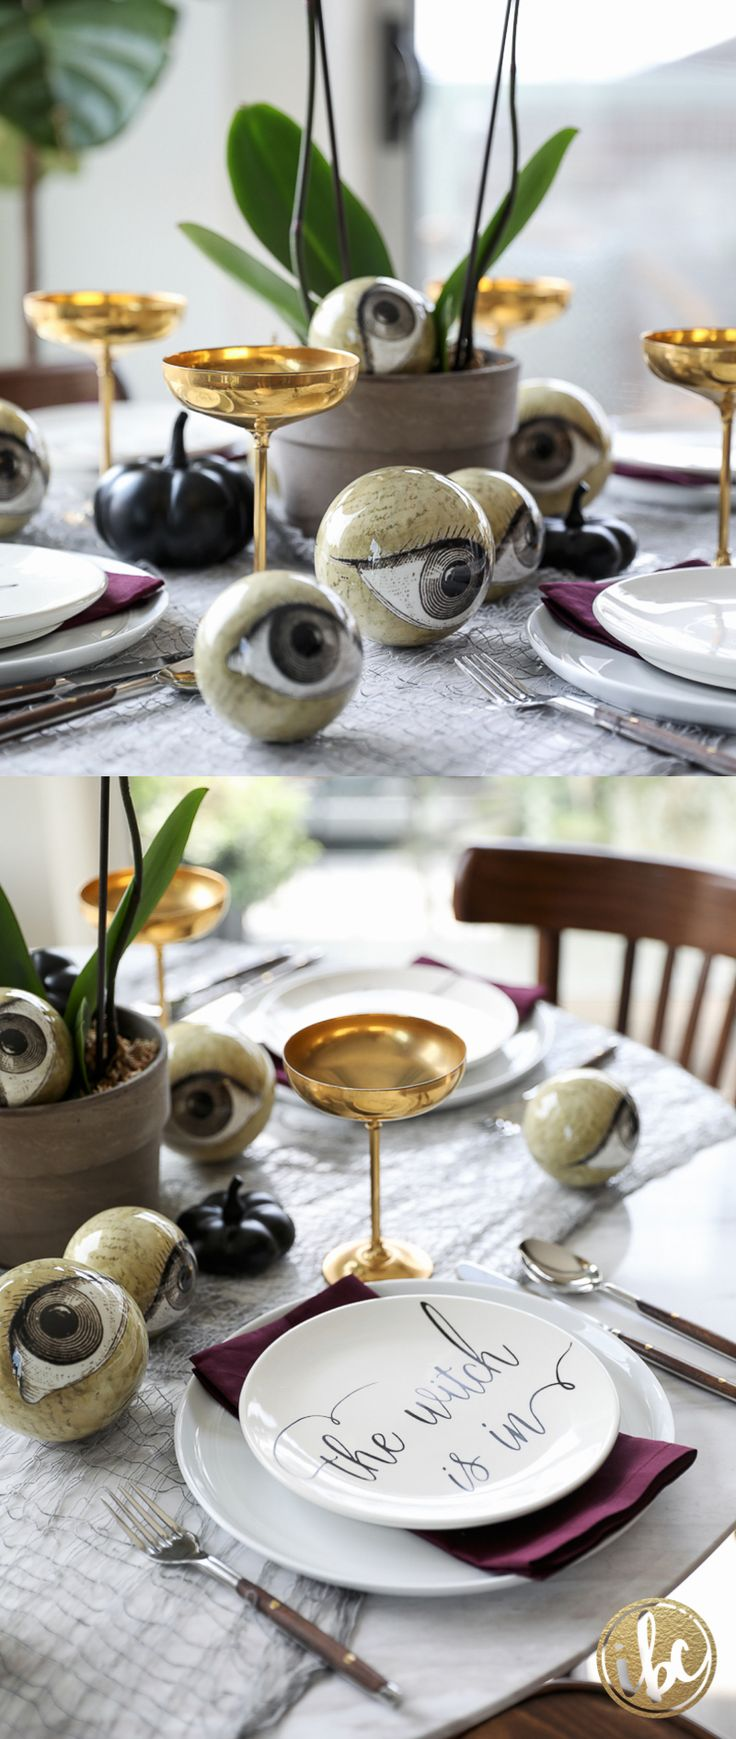 Wicked and Eclectic Halloween Table Setting - spooky chic table decorating ideas #halloween #table #entertaining #spooky #chich